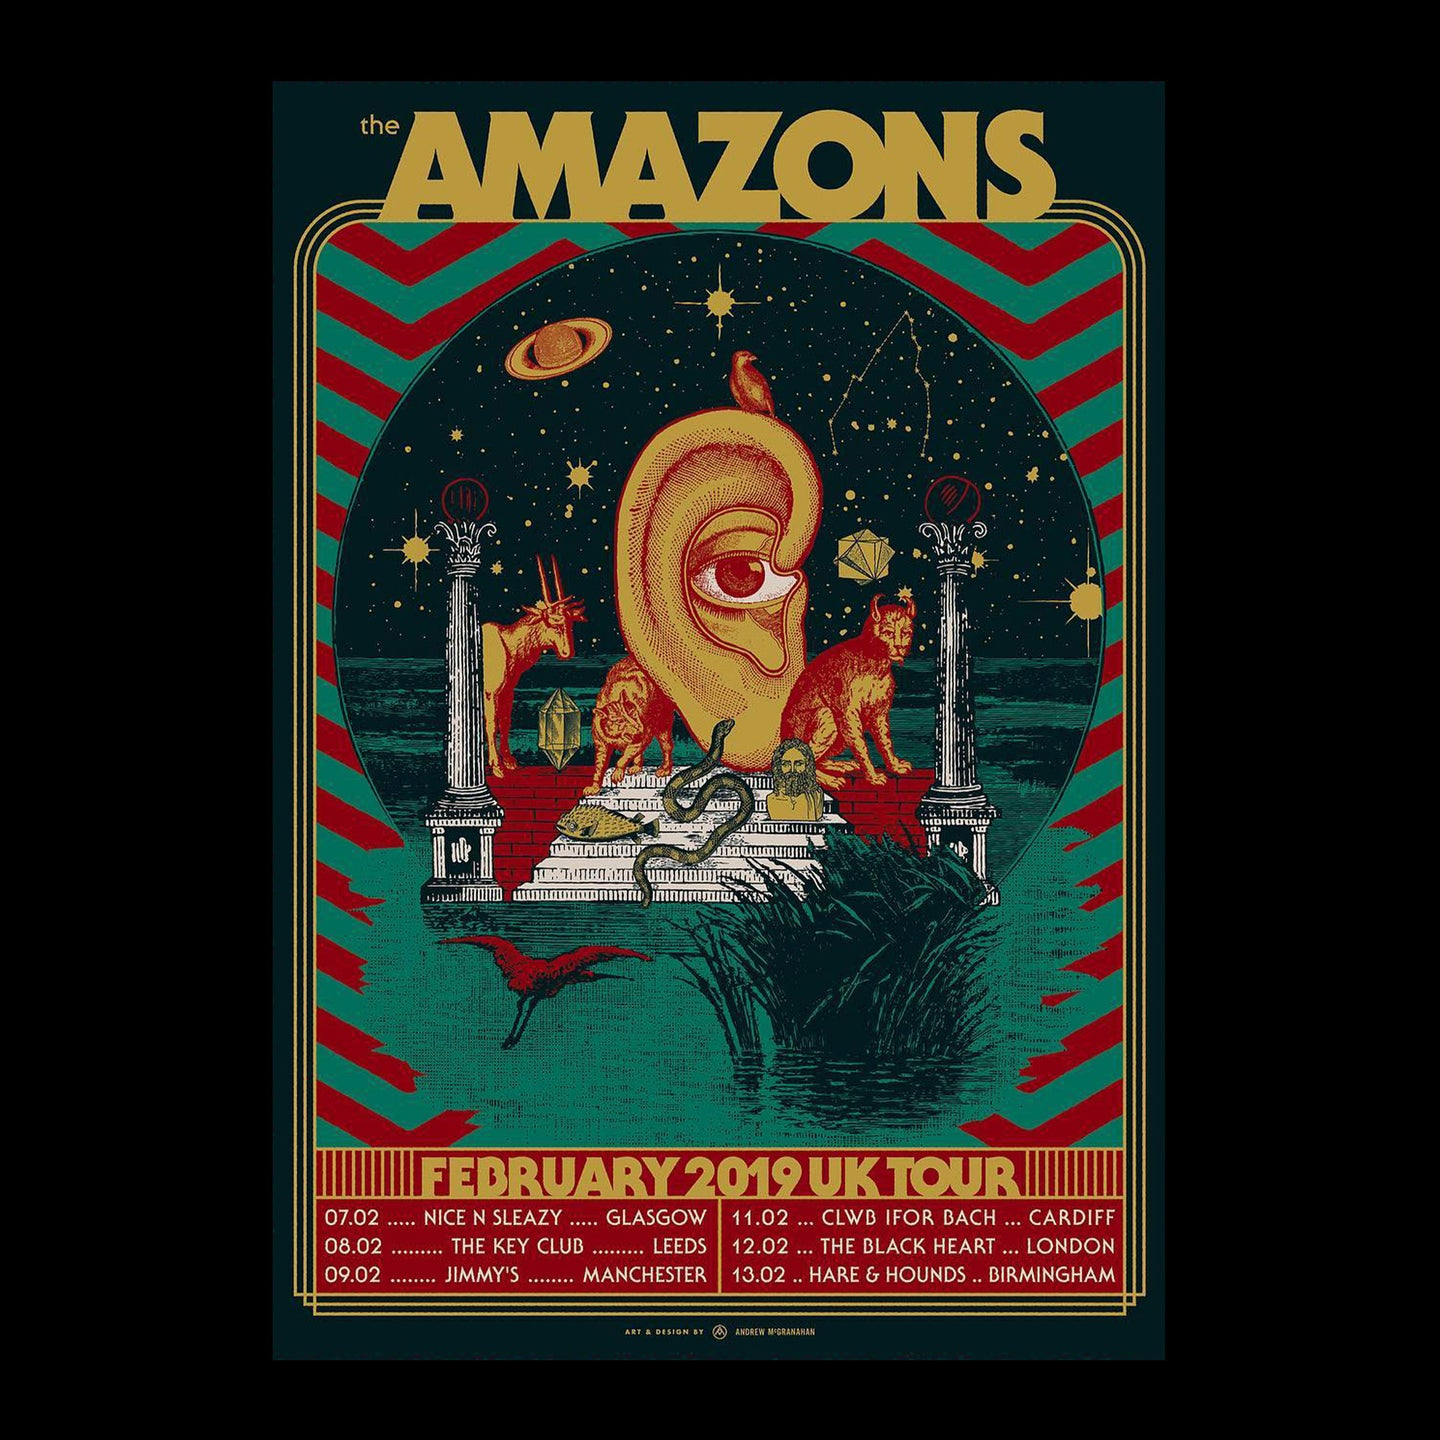 The Amazons February Tour Poster 42.8 x 60.5 cm